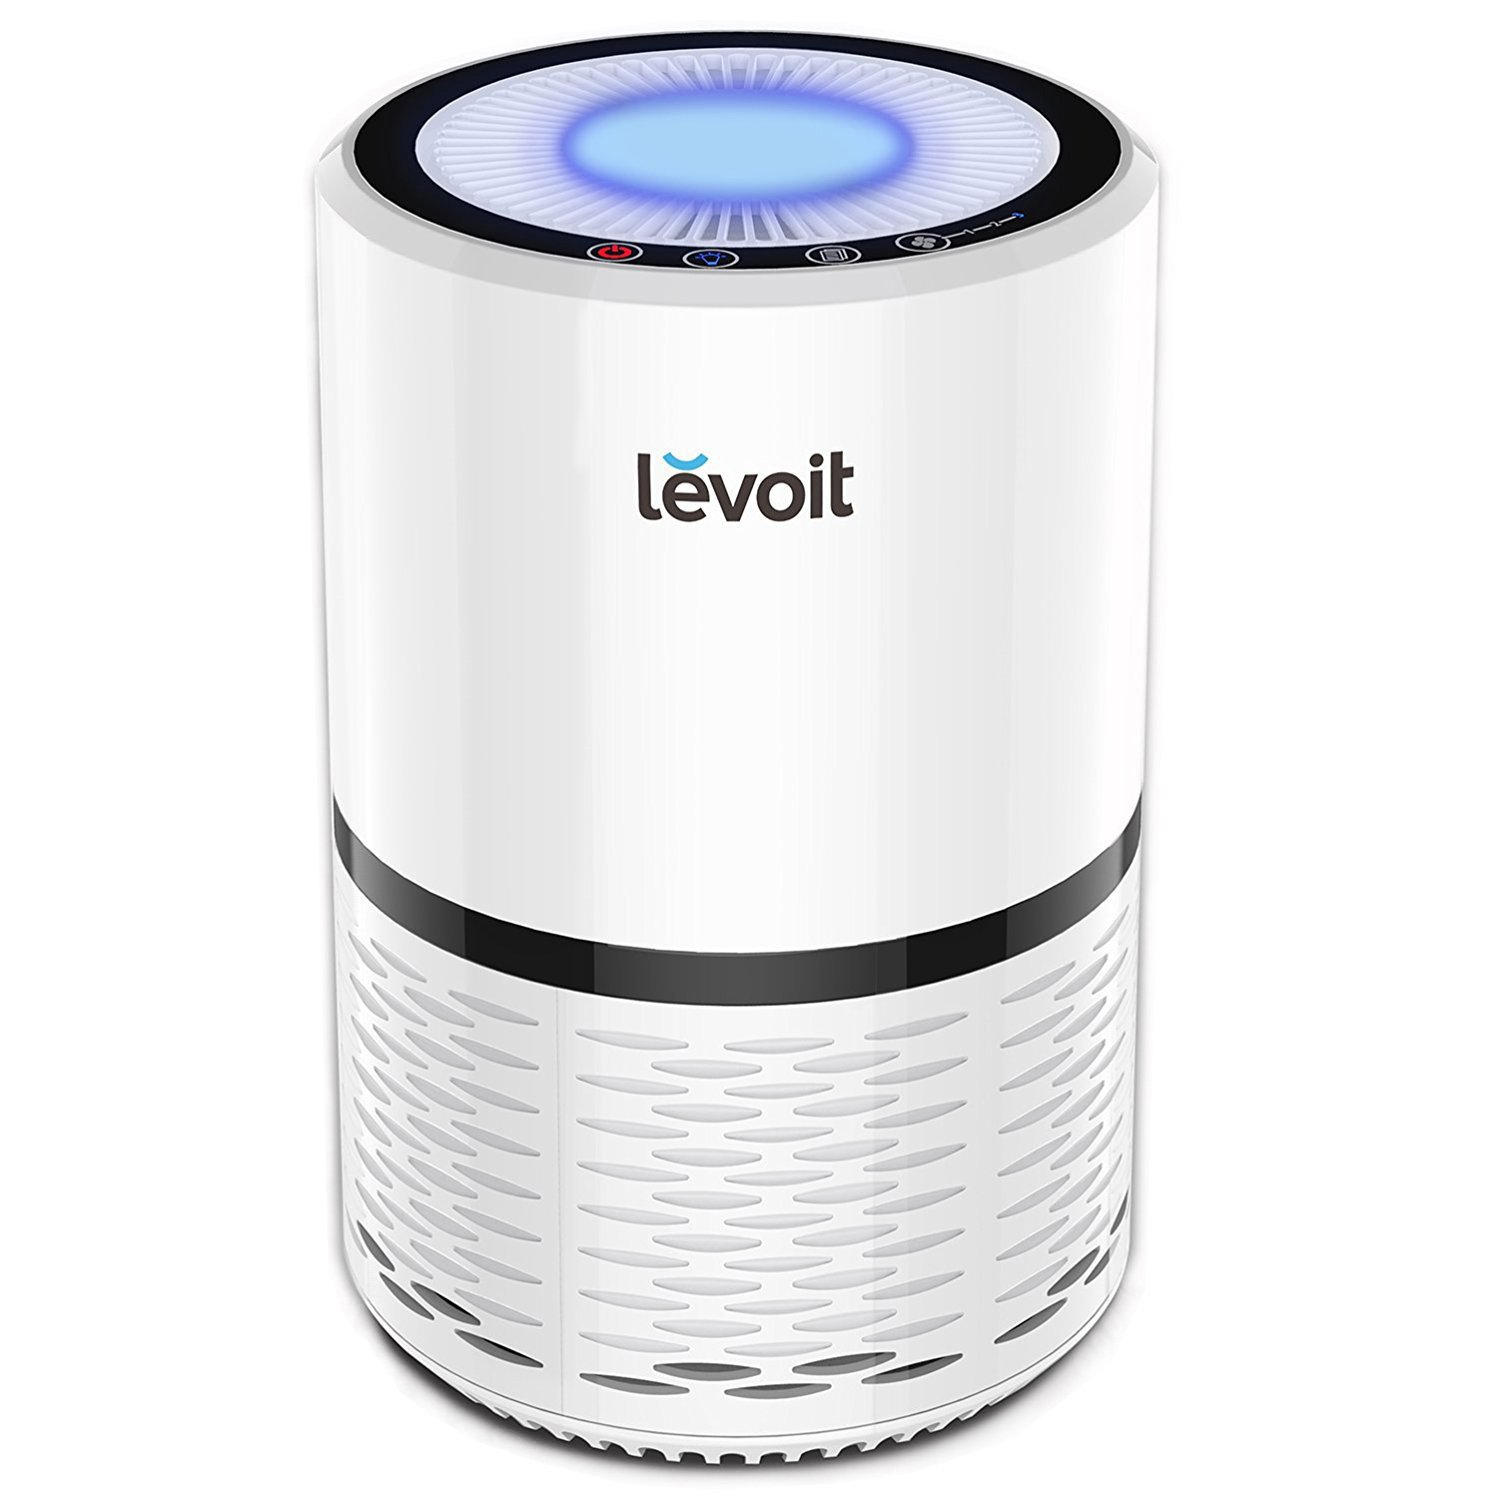 Best HEPA Air Purifier_Levoit Air Purifier Filtration with True HEPA Filter, Compact Odor Allergen Eliminator Cleaner for Room, Home, Pets, Smokers, Cooking, LV-H132